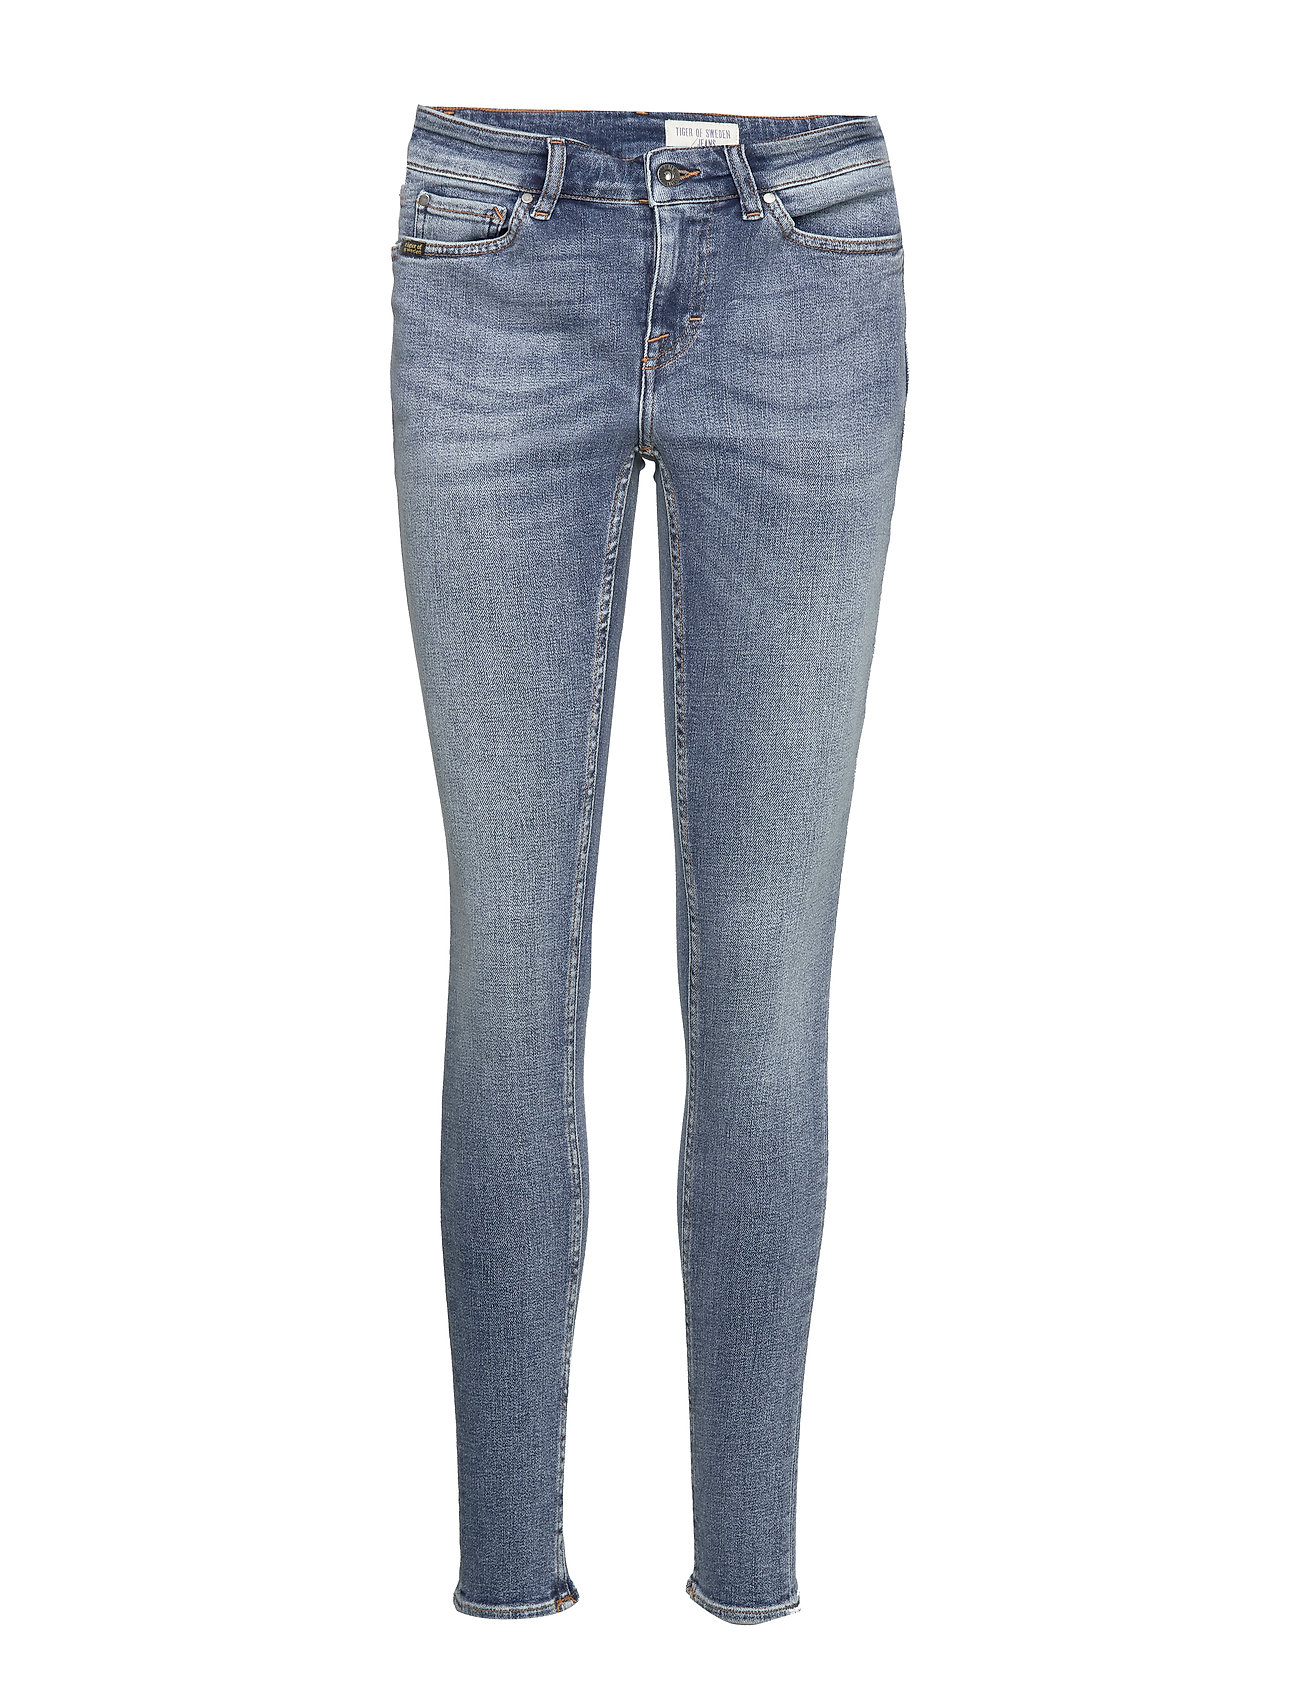 Tiger of Sweden Jeans SLIGHT - LIGHT BLUE